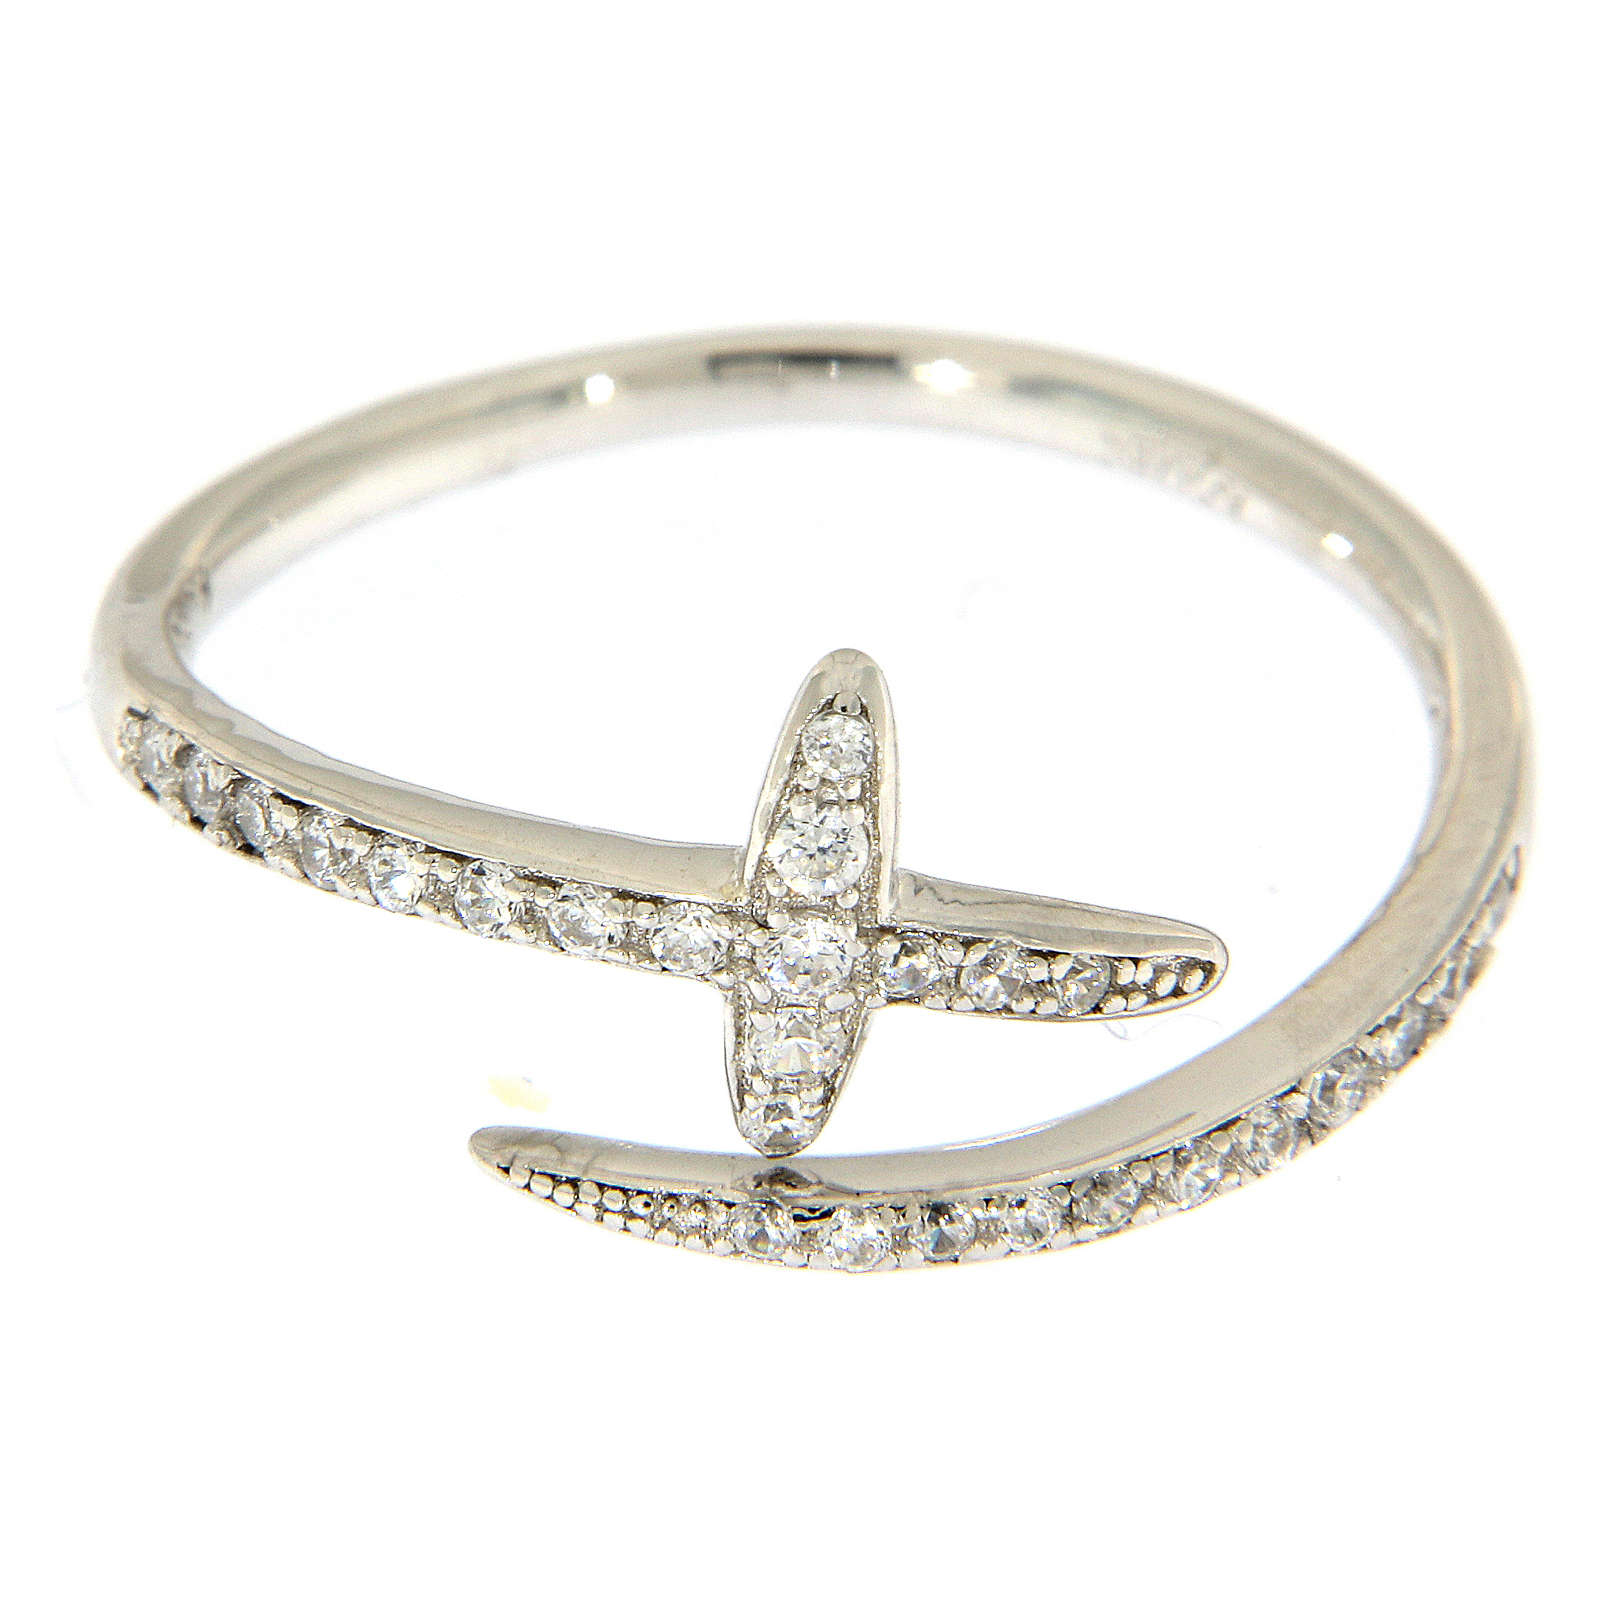 AMEN ring with cross and rhinestones in 925 silver 3